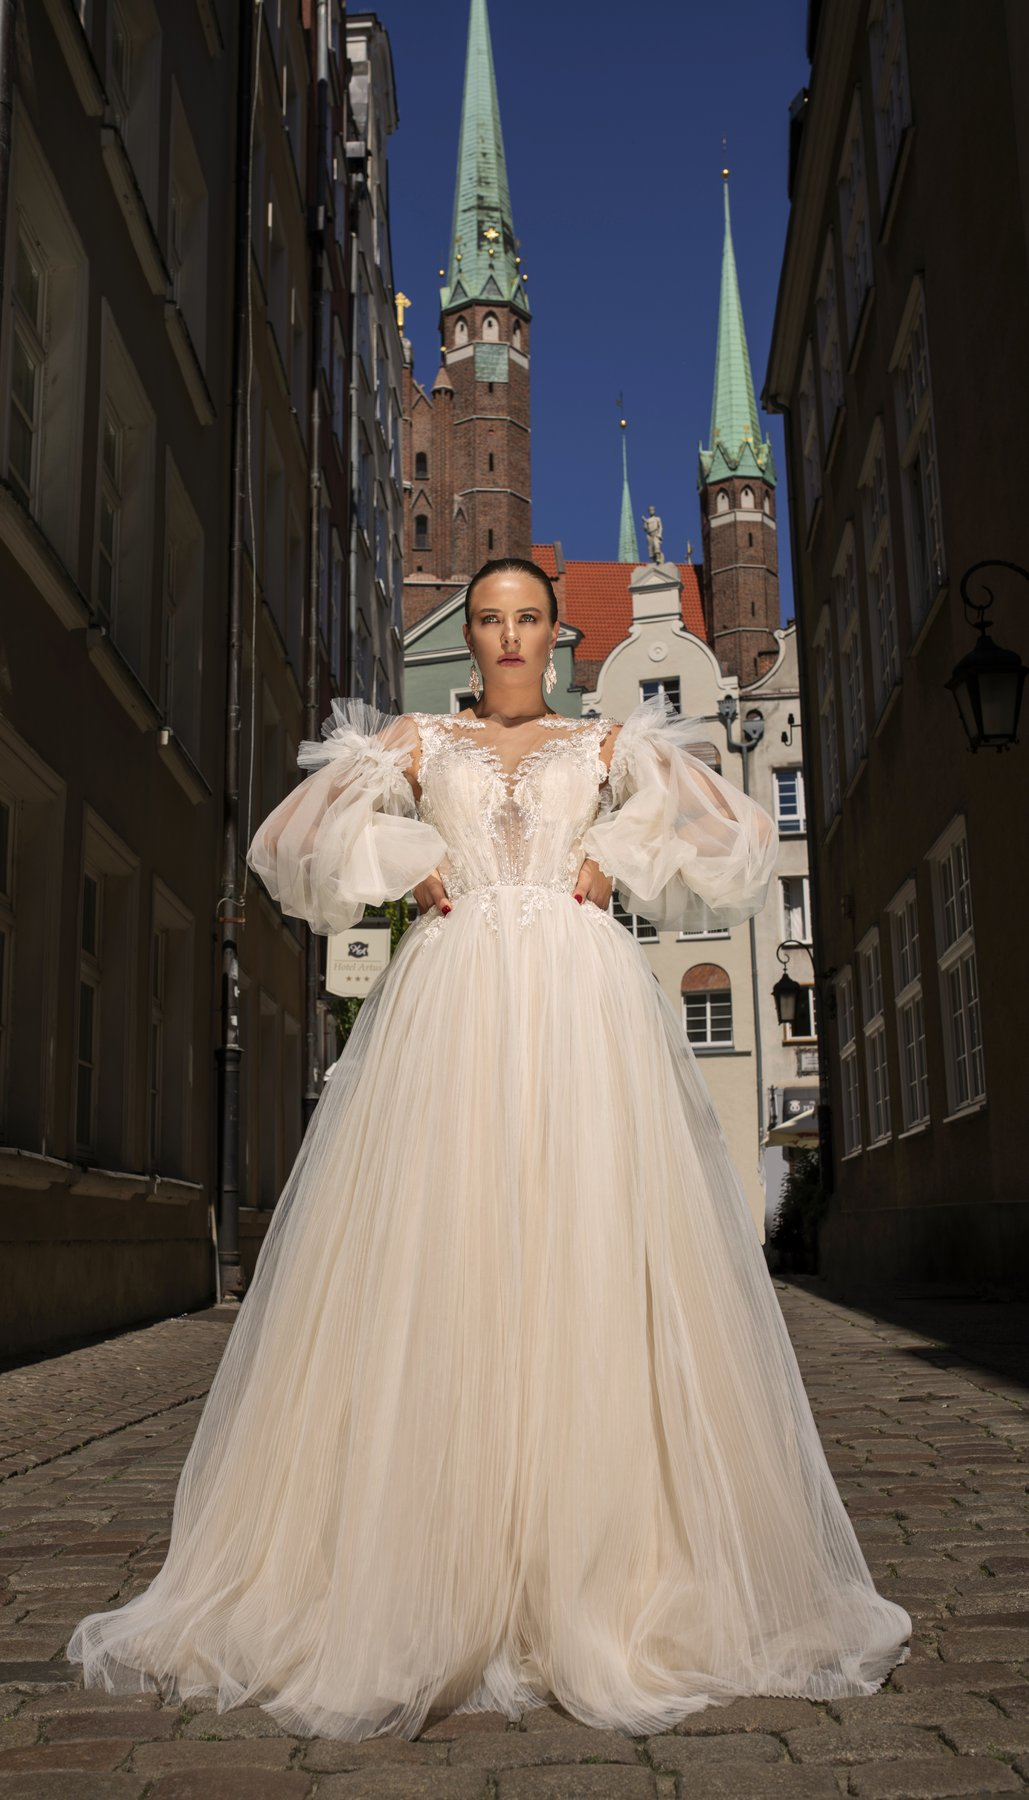 AVELINE - MODERN BALL GOWN WITH DETACHABLE PUFF SLEEVES